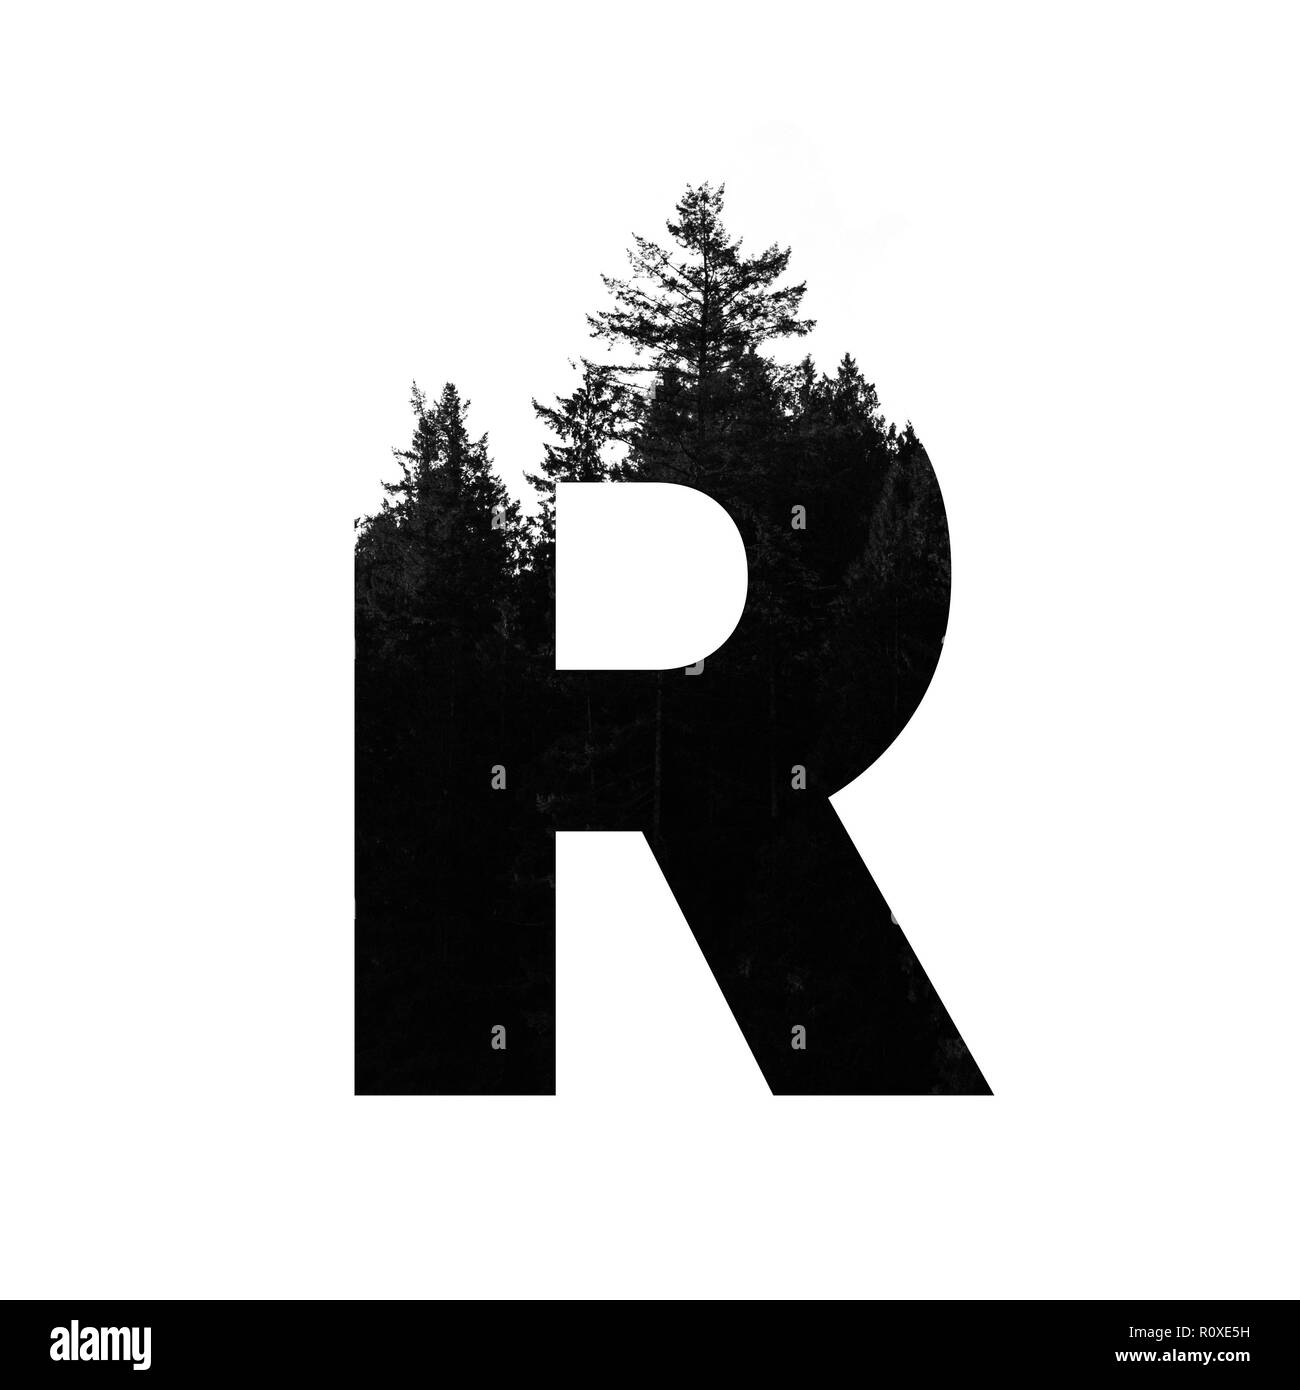 letter r black and white stock photos & images - page 3 - alamy